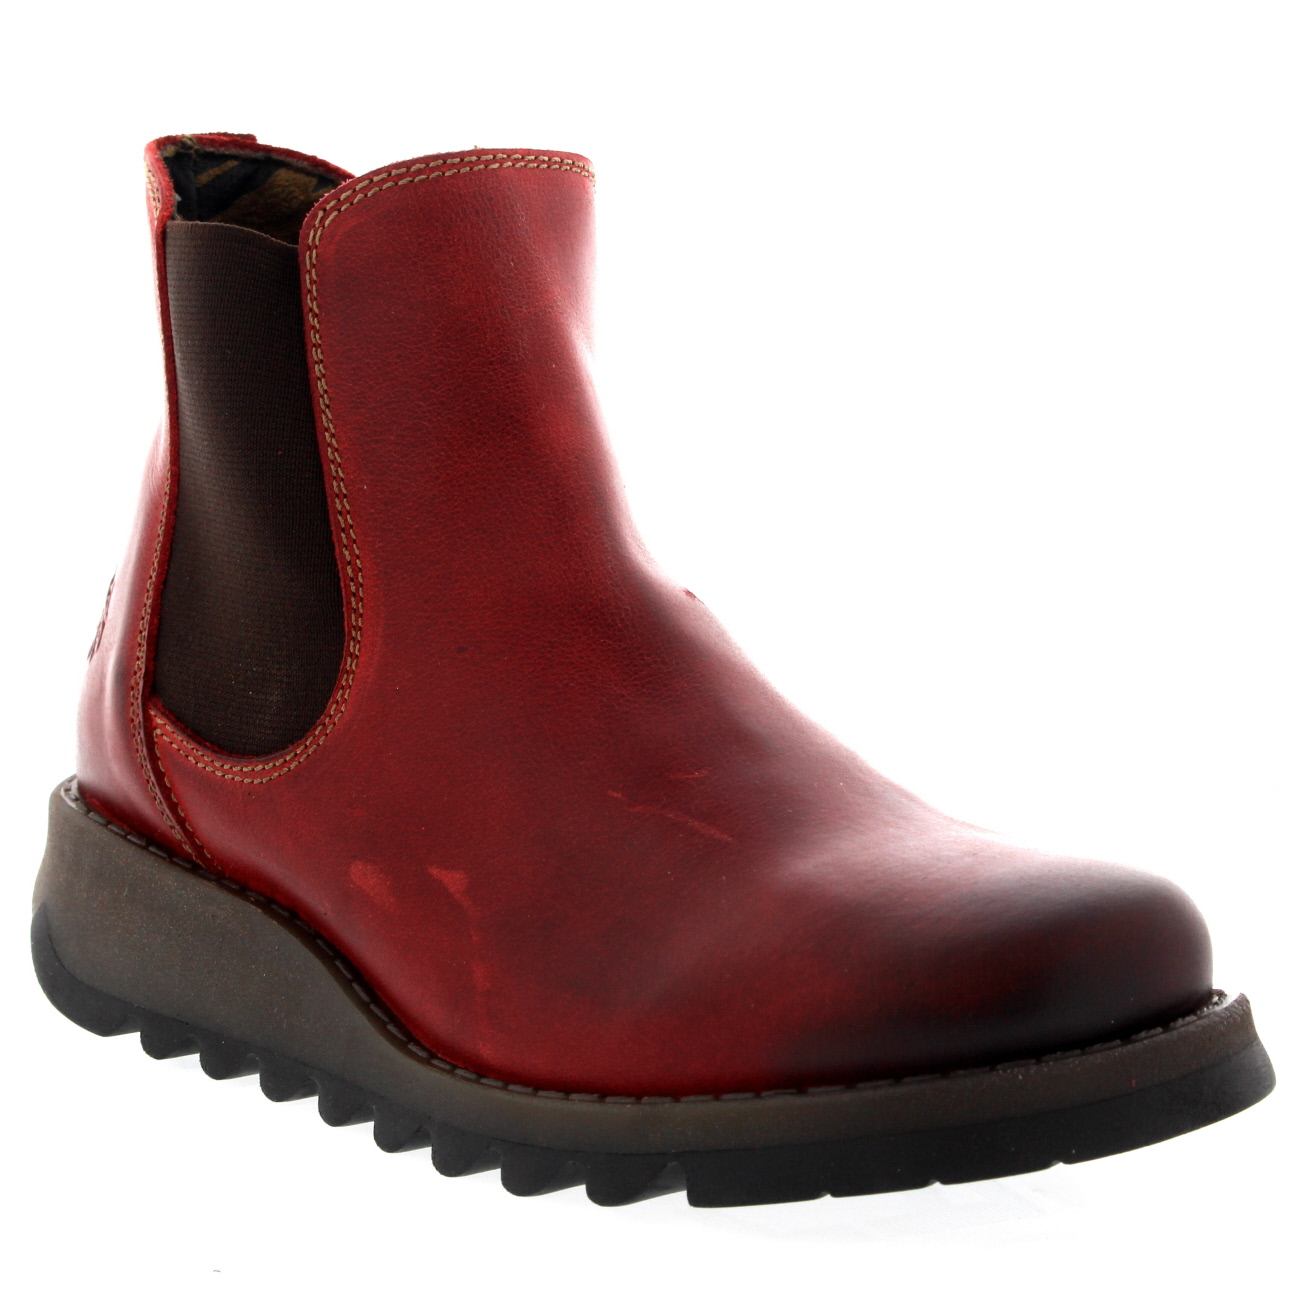 Women's Wedge Heel Boots. Clothing. Shoes. Womens Shoes. Women's Wedge Heel Boots. Showing 48 of results that match your query. Search Product Result. Product - Pure Women's Fashion Round Toe Slouch Large Buckle Wedge Mid Calf Boot Shoes. Product Image. Price $ .